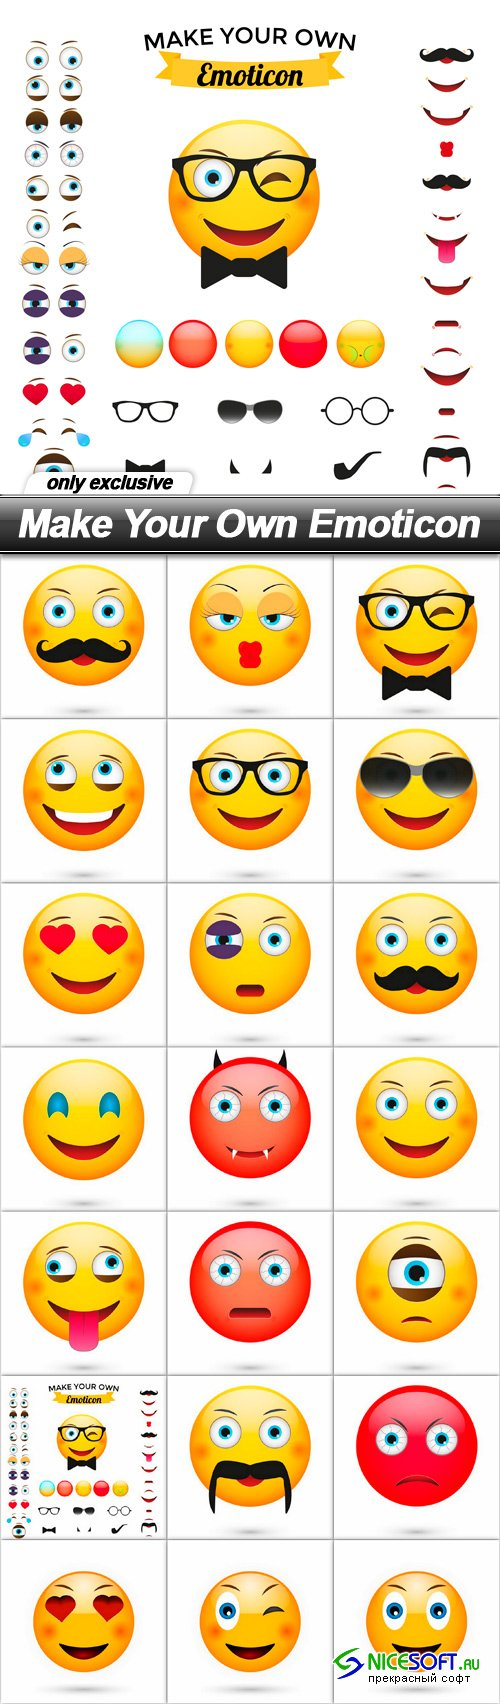 Make Your Own Emoticon